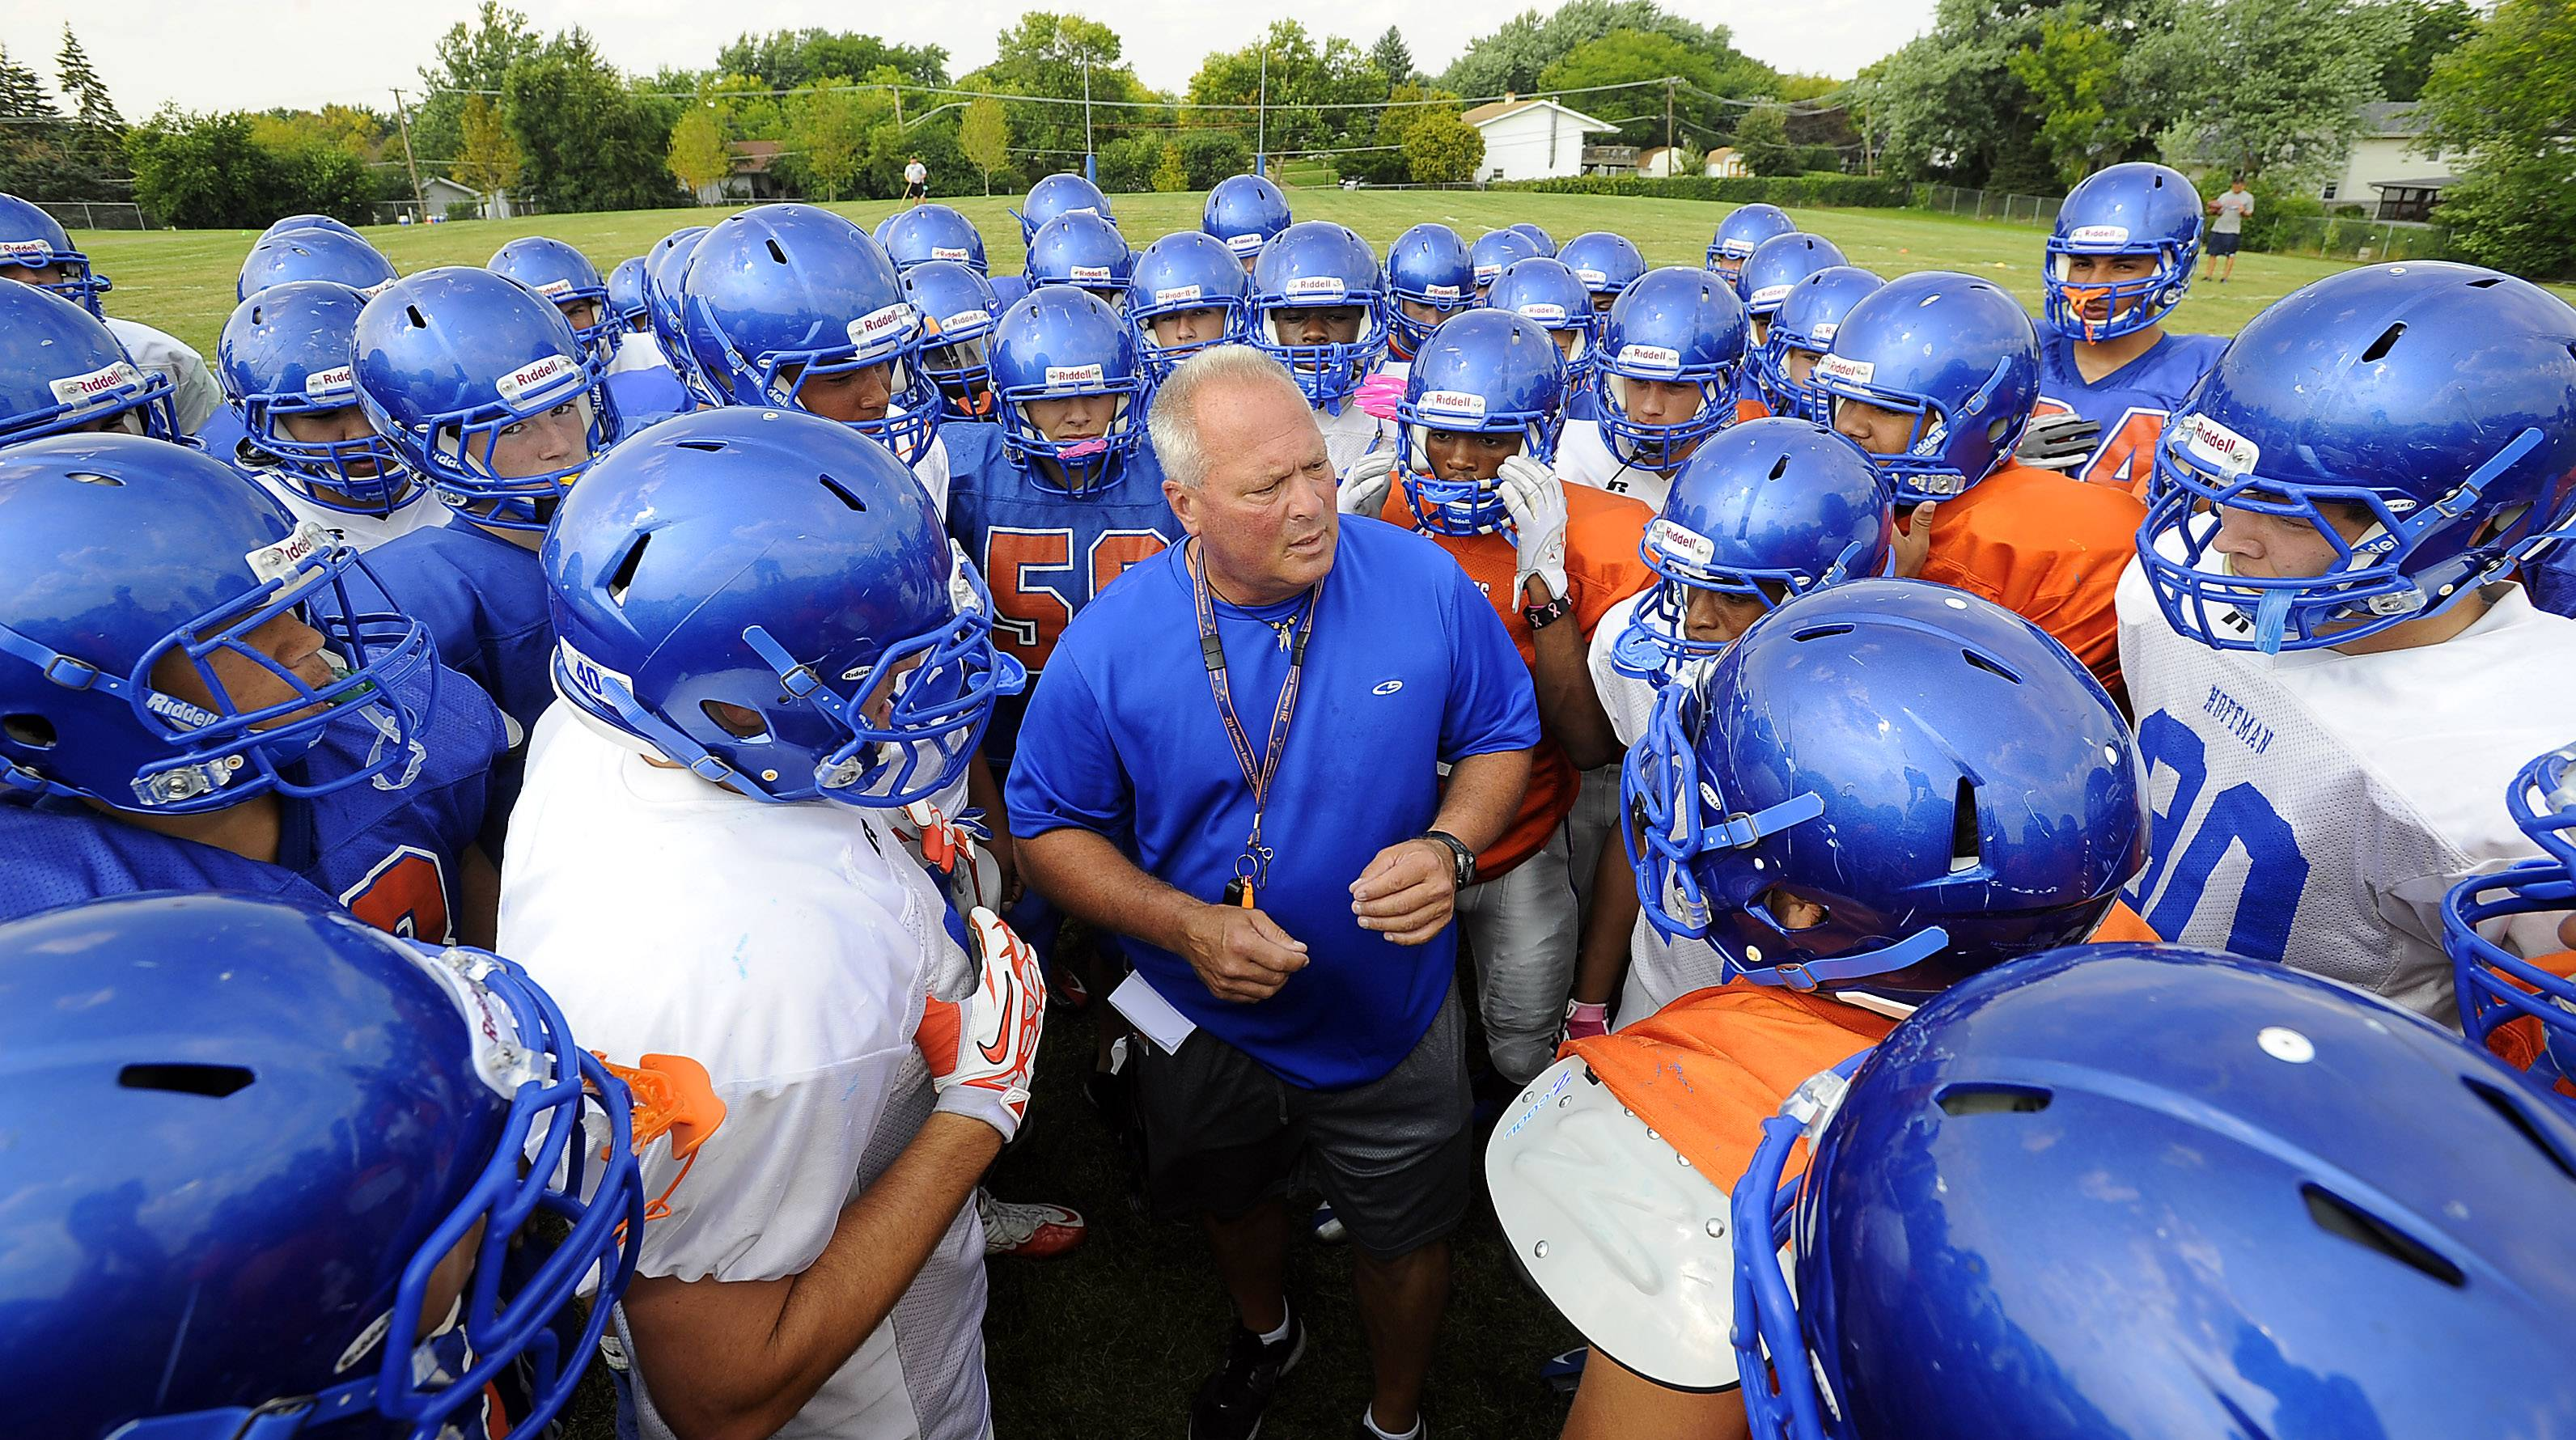 Mike Donatucci is through as Hoffman Estates' football head coach after leading the Hawks to the postseason this fall.